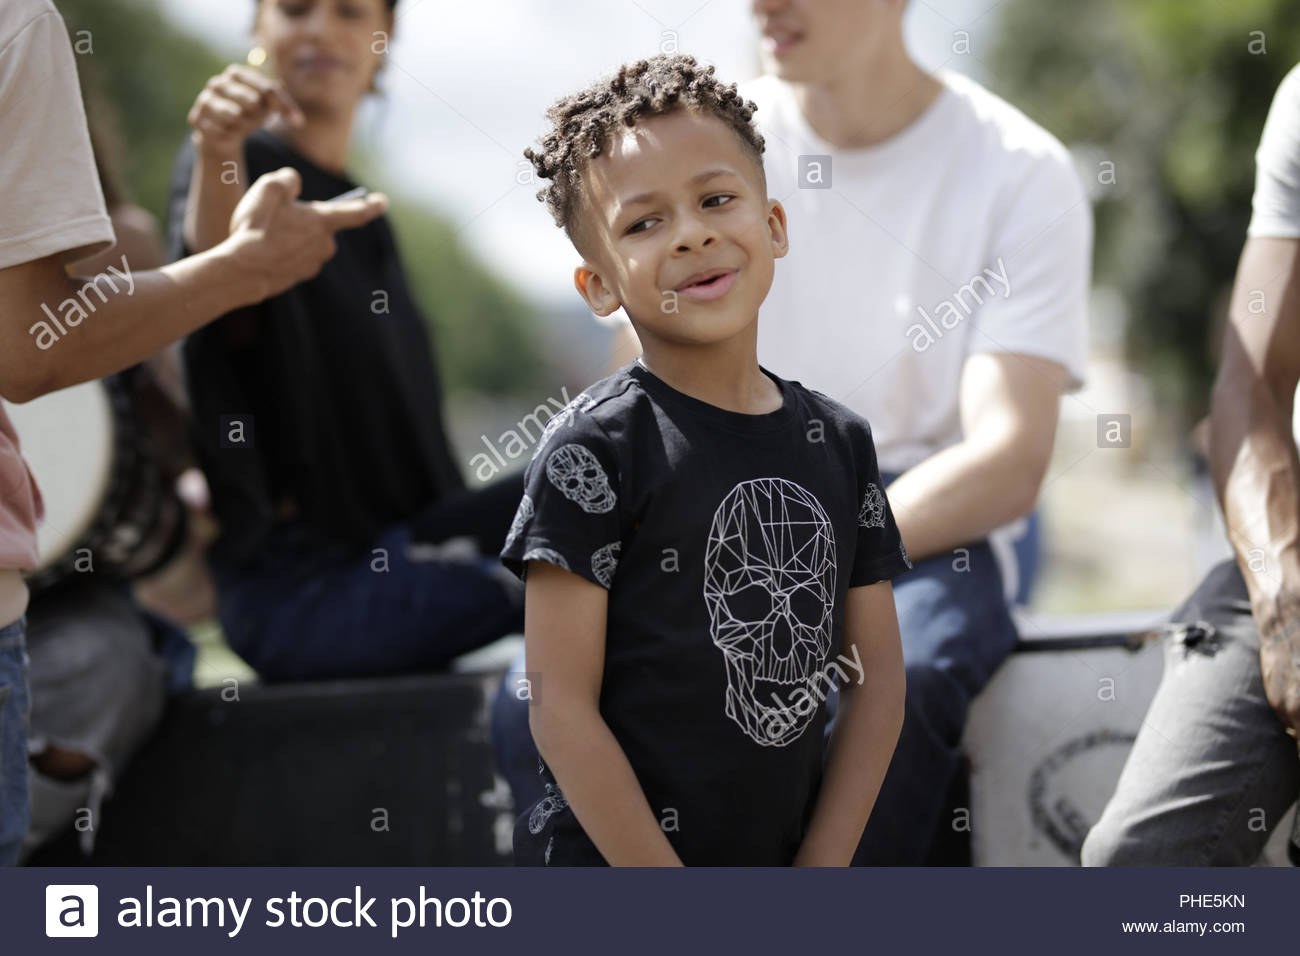 Boy spending time with family in park - Stock Image